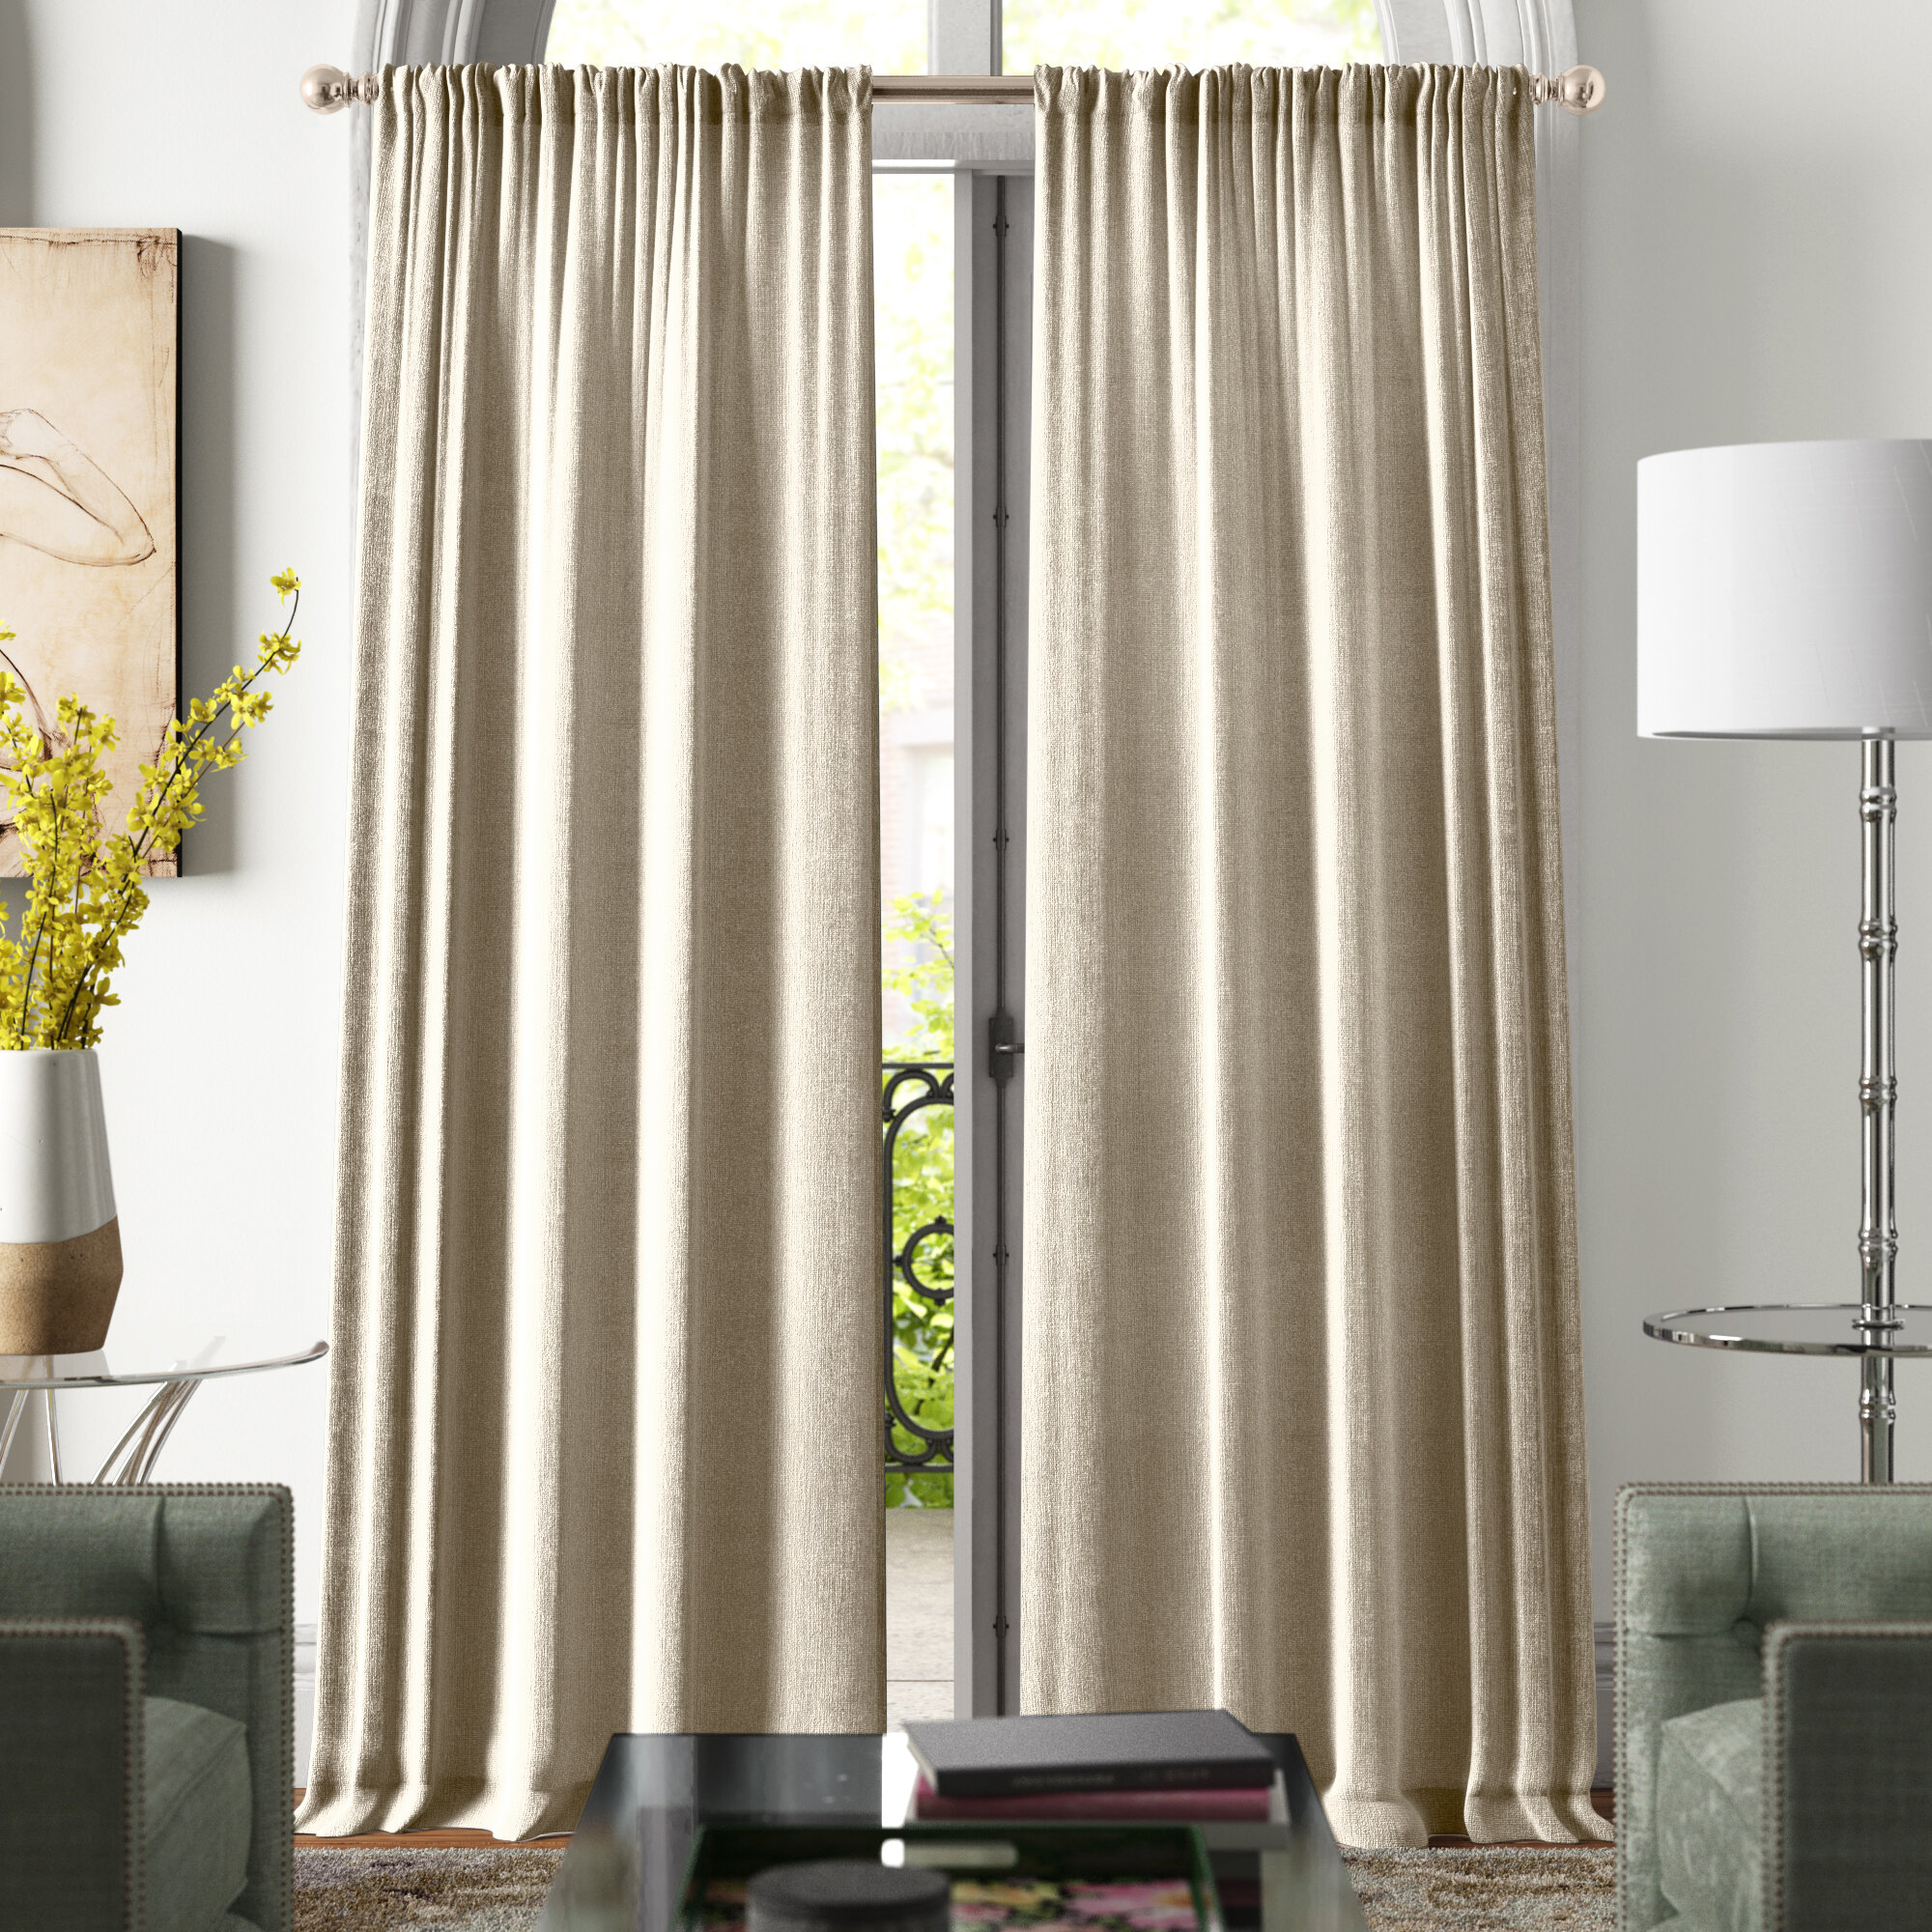 Modern Knotted Cotton Blend Solid Room Darkening Rod Pocket Curtain Panels Reviews Joss Main